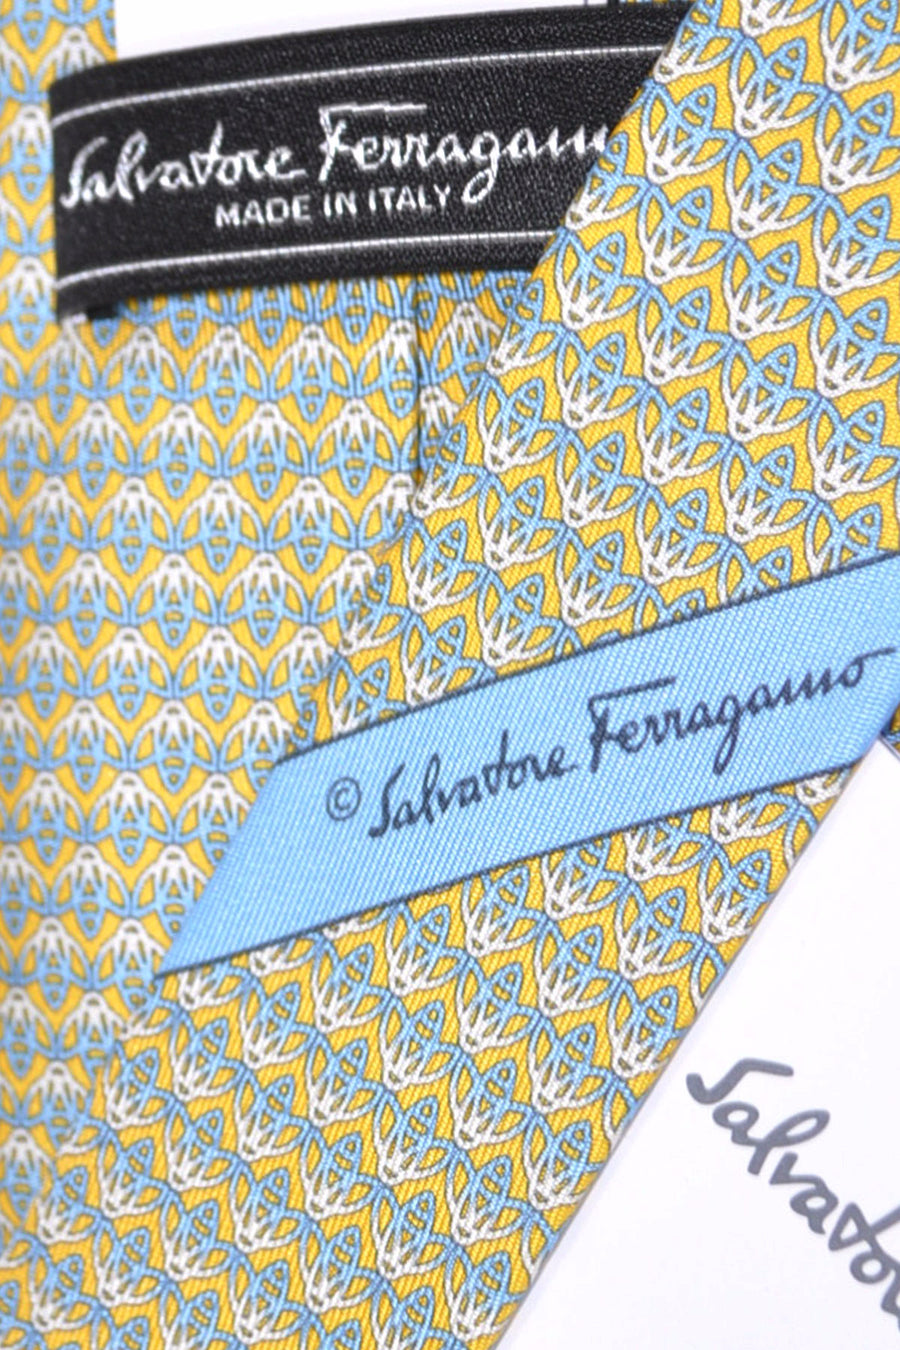 Salvatore Ferragamo Tie Yellow April - Spring / Summer 2016